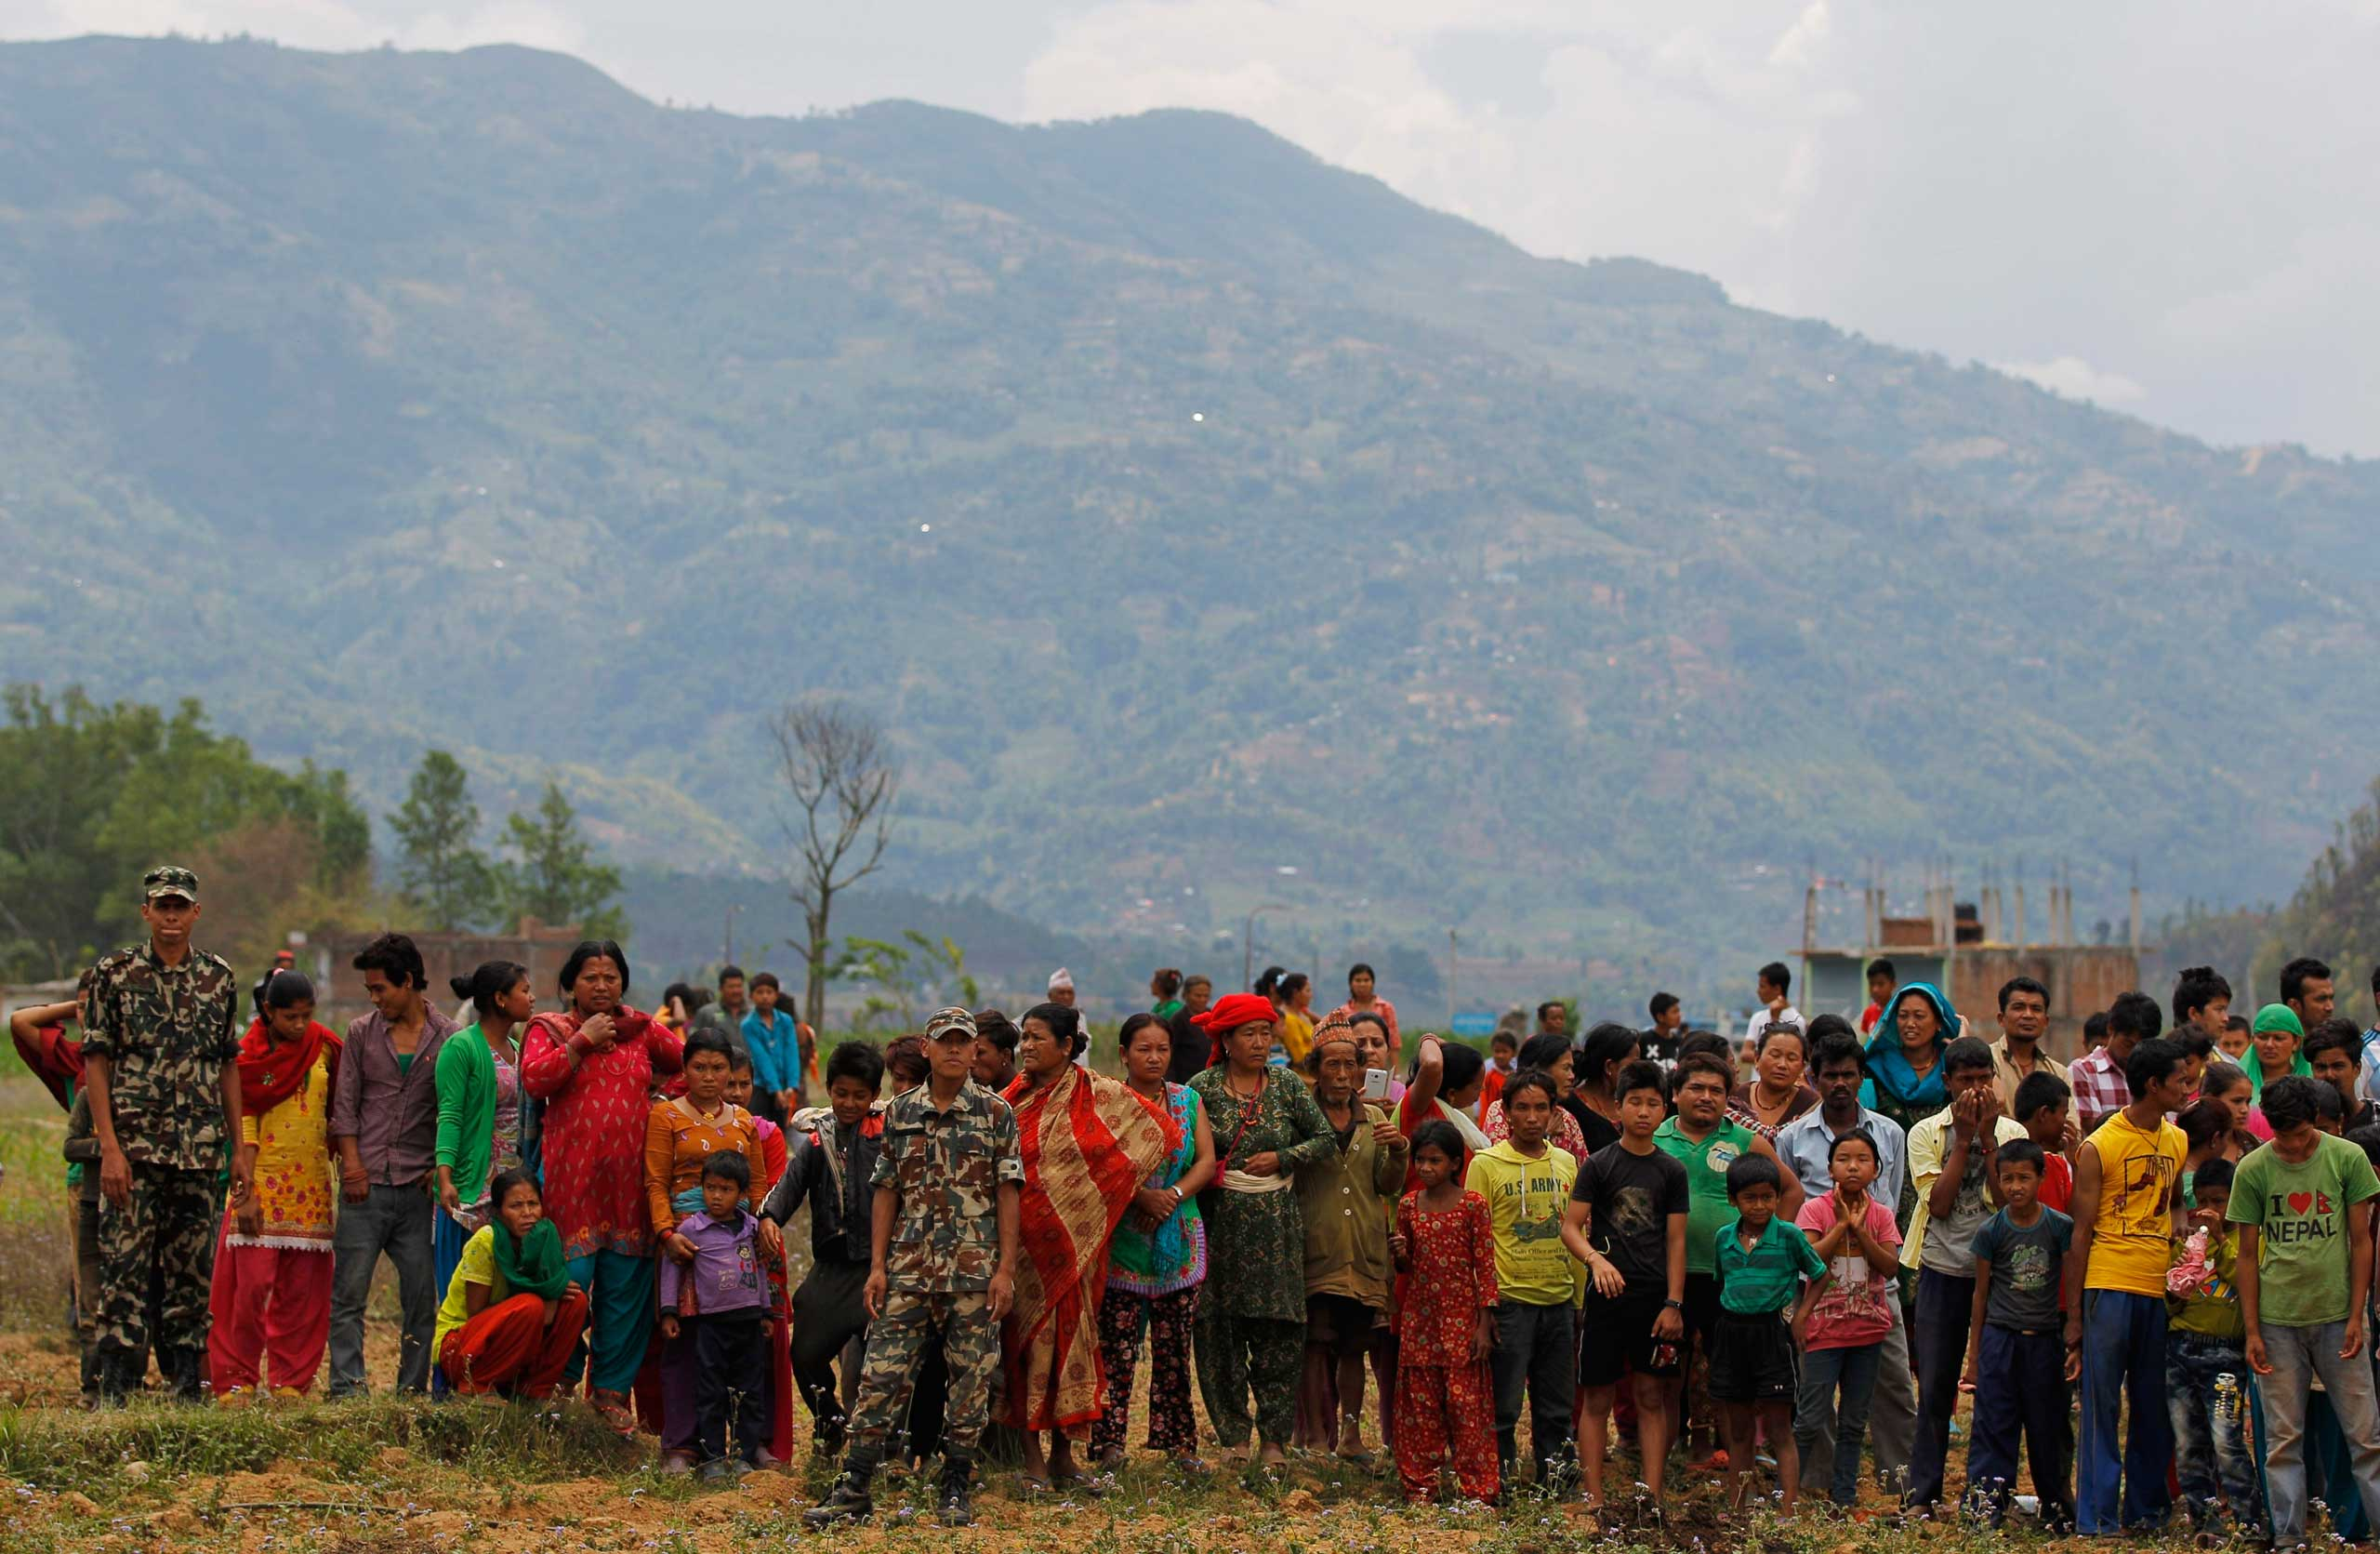 Nepalese villagers watch as relief material is brought in by an Indian Air Force helicopter for victims of Saturday's earthquake at Trishuli Bazar in Nepal on April 27, 2015.